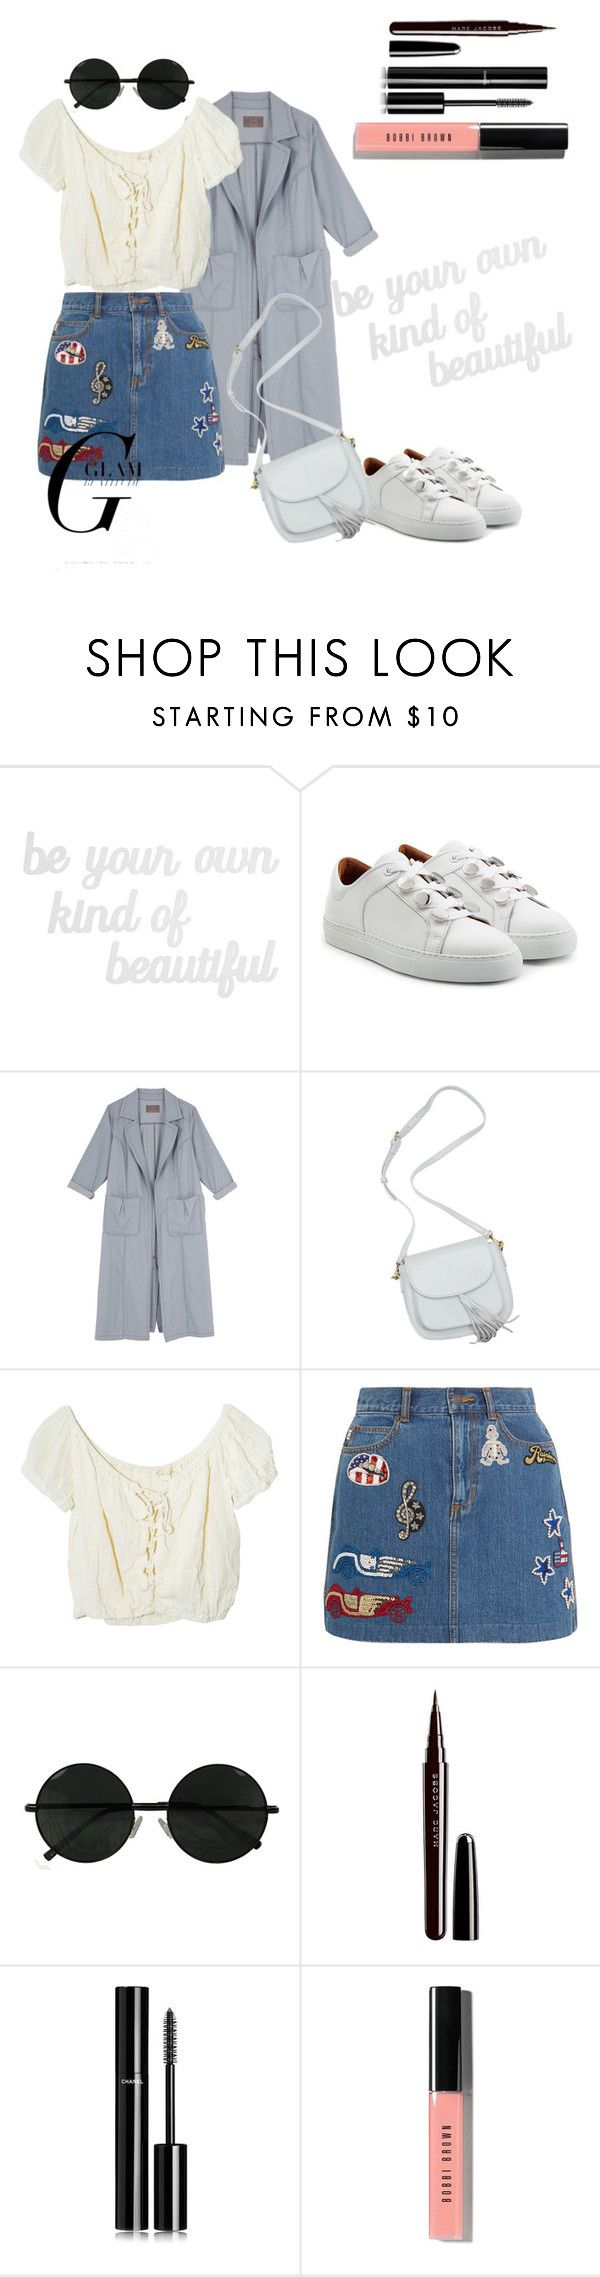 """Bright White Sneakers"" by adelaidefashion ❤ liked on Polyvore featuring PBteen, Carven, Melissa McCarthy Seven7, Jens Pirate Booty, Marc Jacobs, Chanel, Bobbi Brown Cosmetics and plus size clothing"